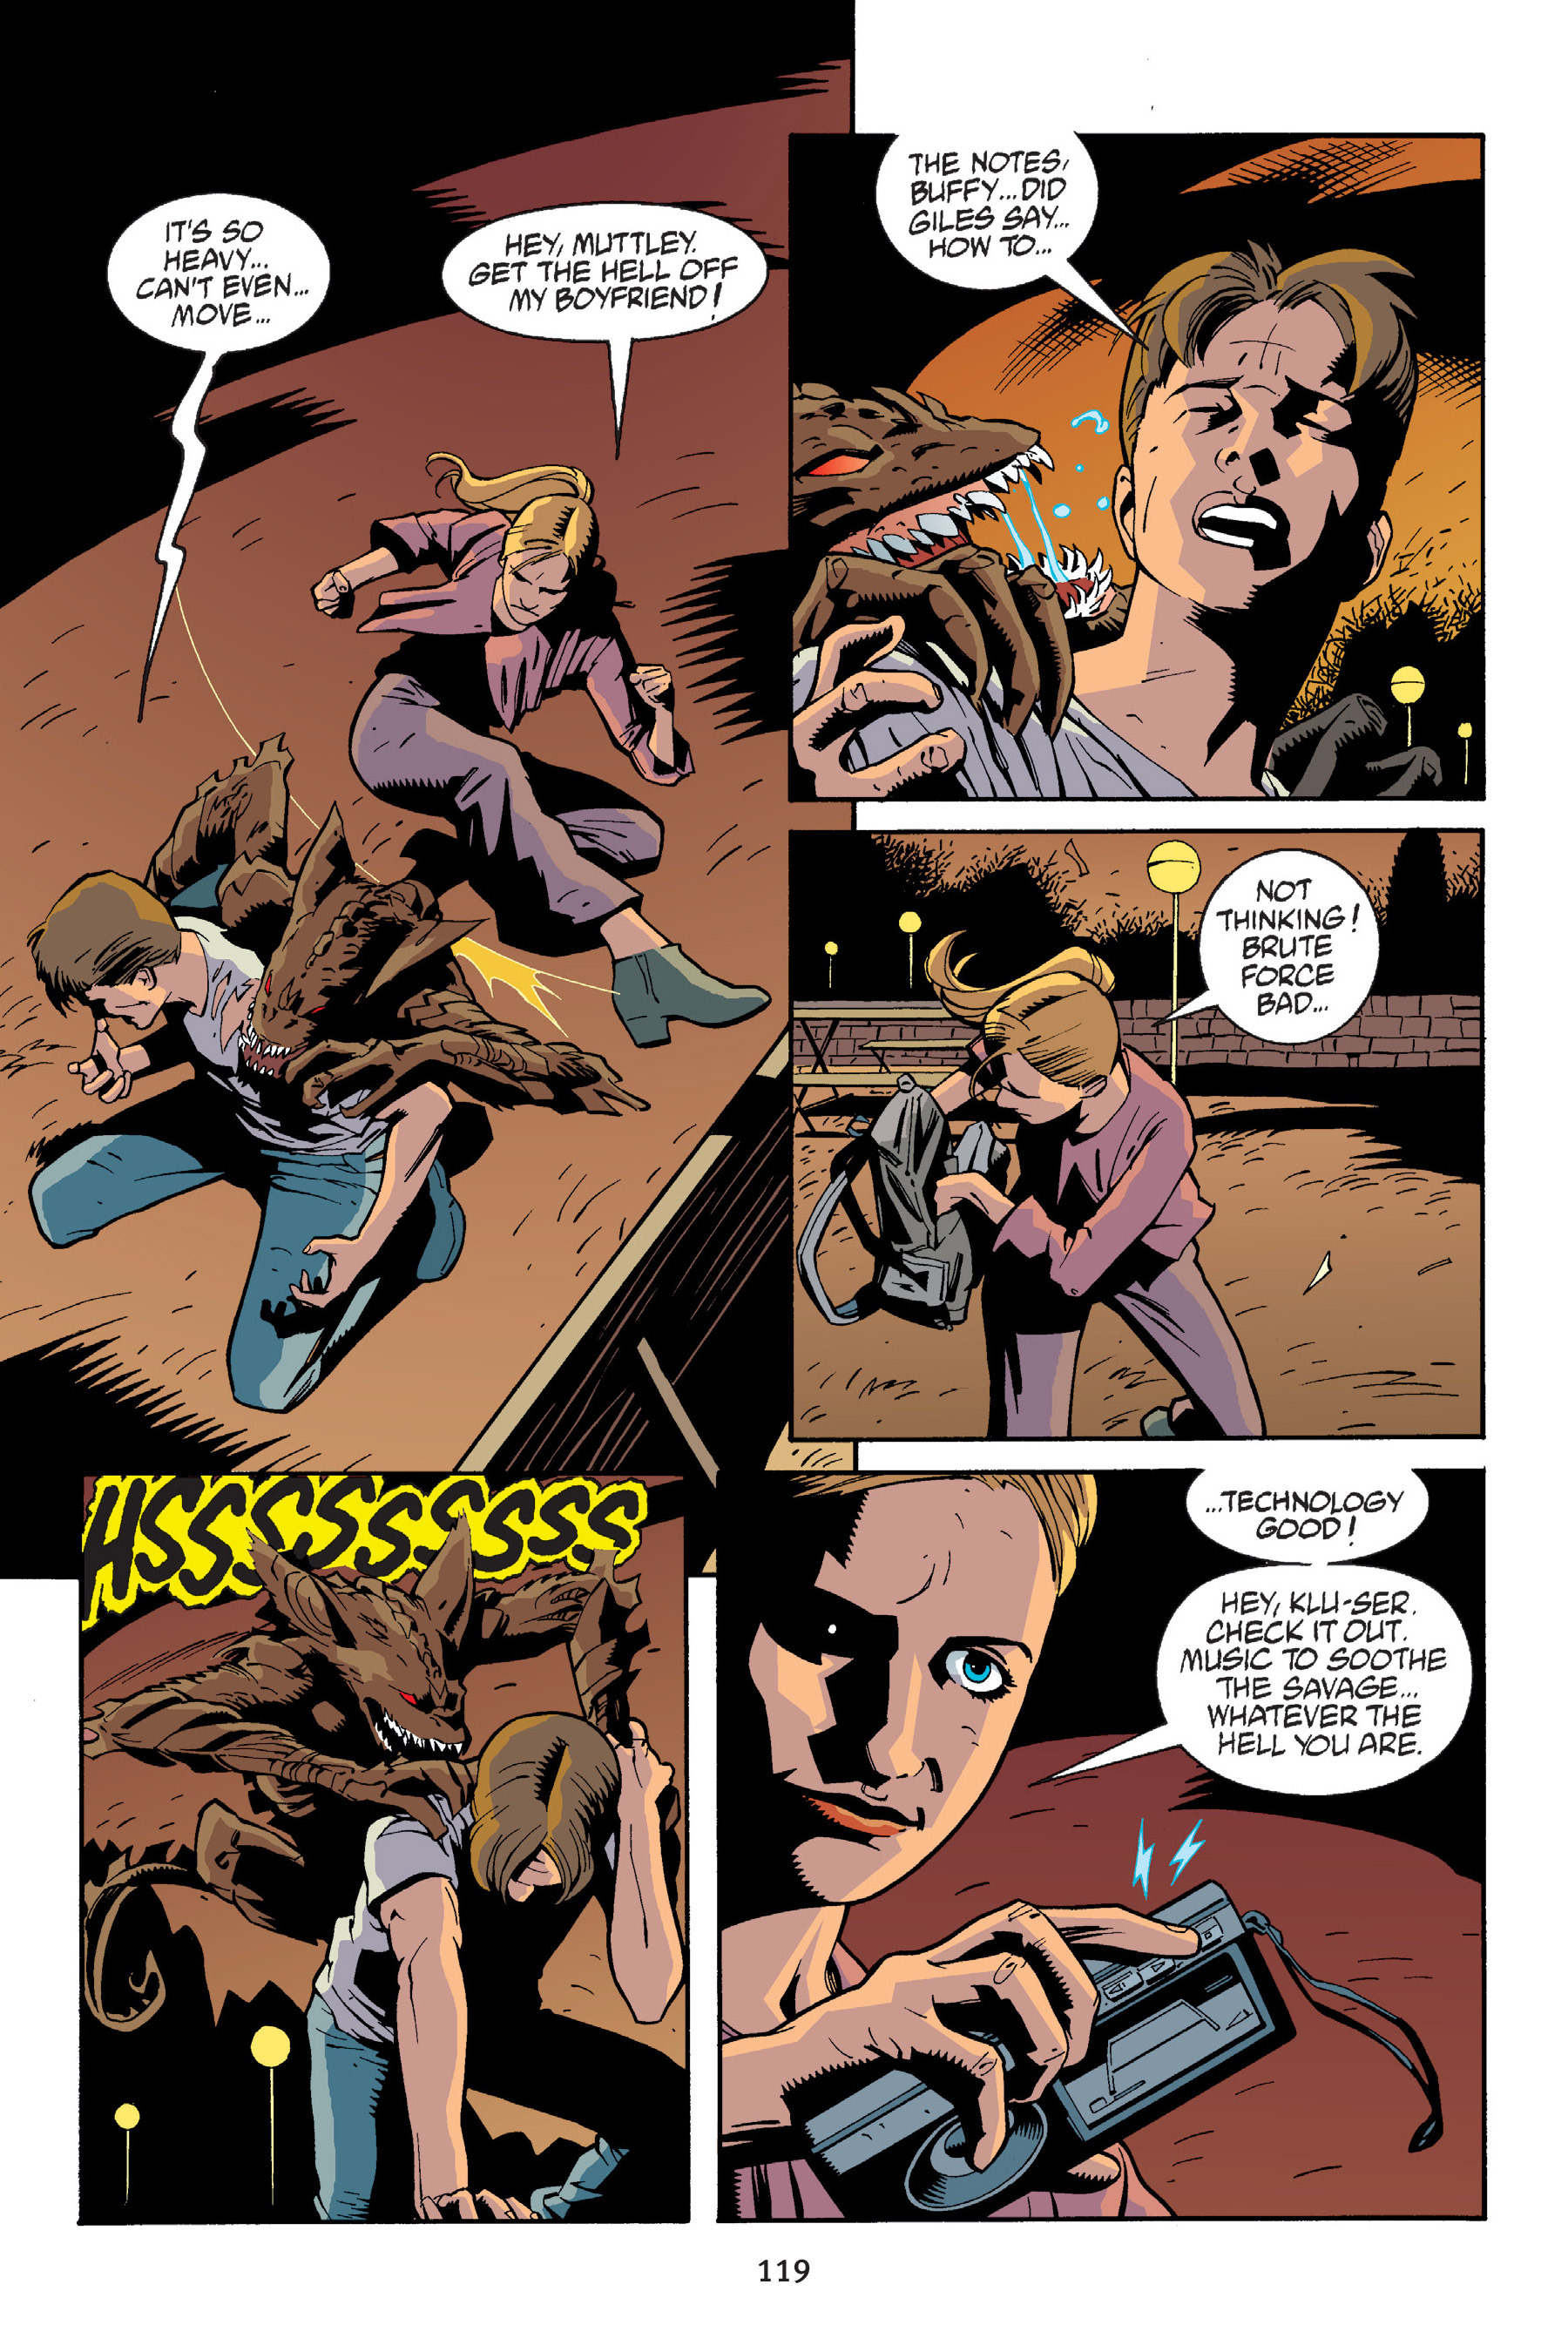 Read online Buffy the Vampire Slayer: Omnibus comic -  Issue # TPB 6 - 119